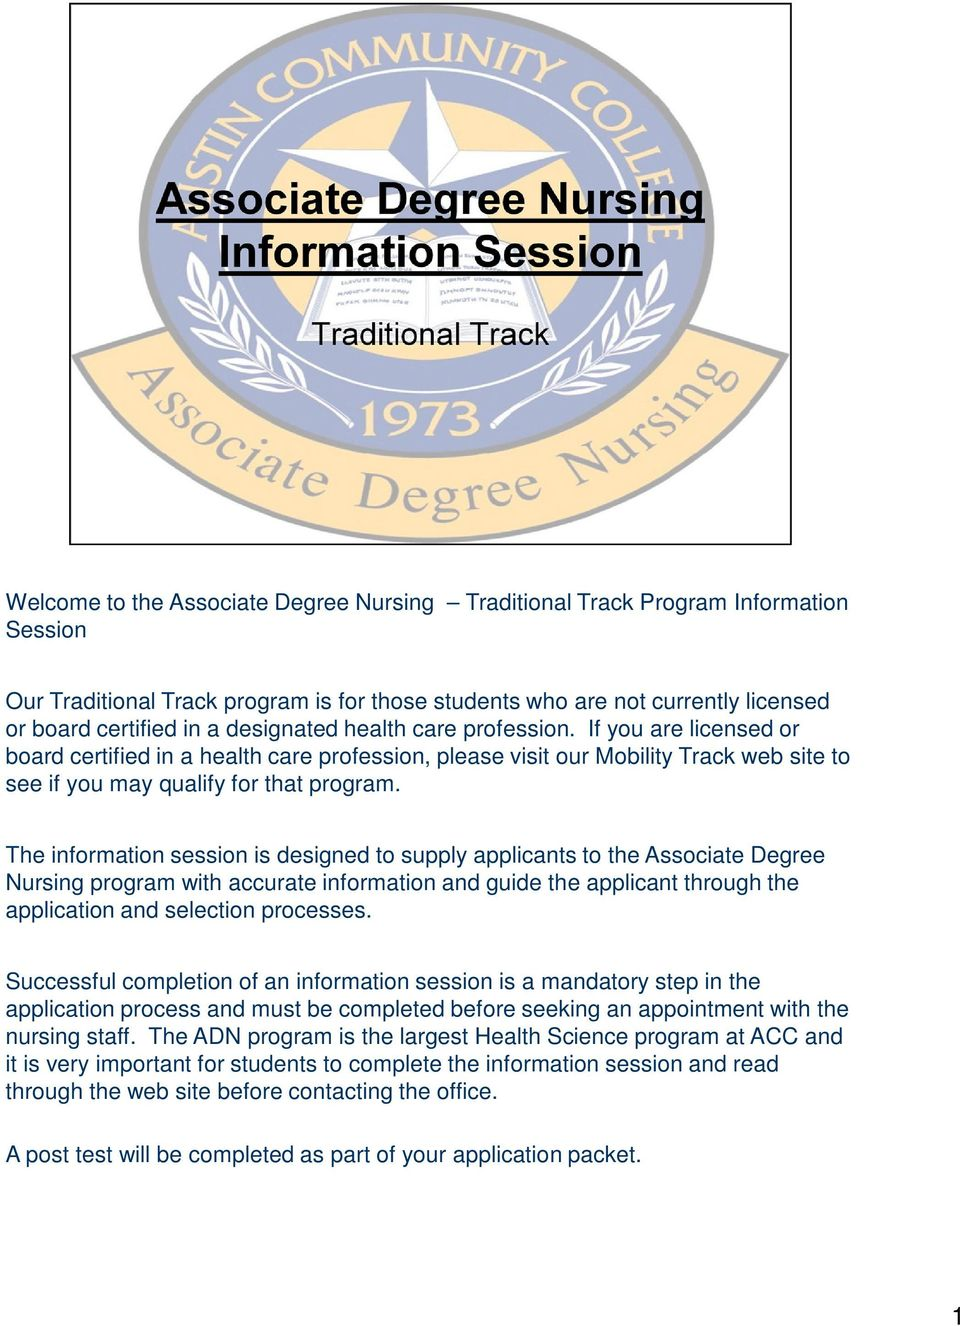 The information session is designed to supply applicants to the Associate Degree Nursing program with accurate information and guide the applicant through the application and selection processes.